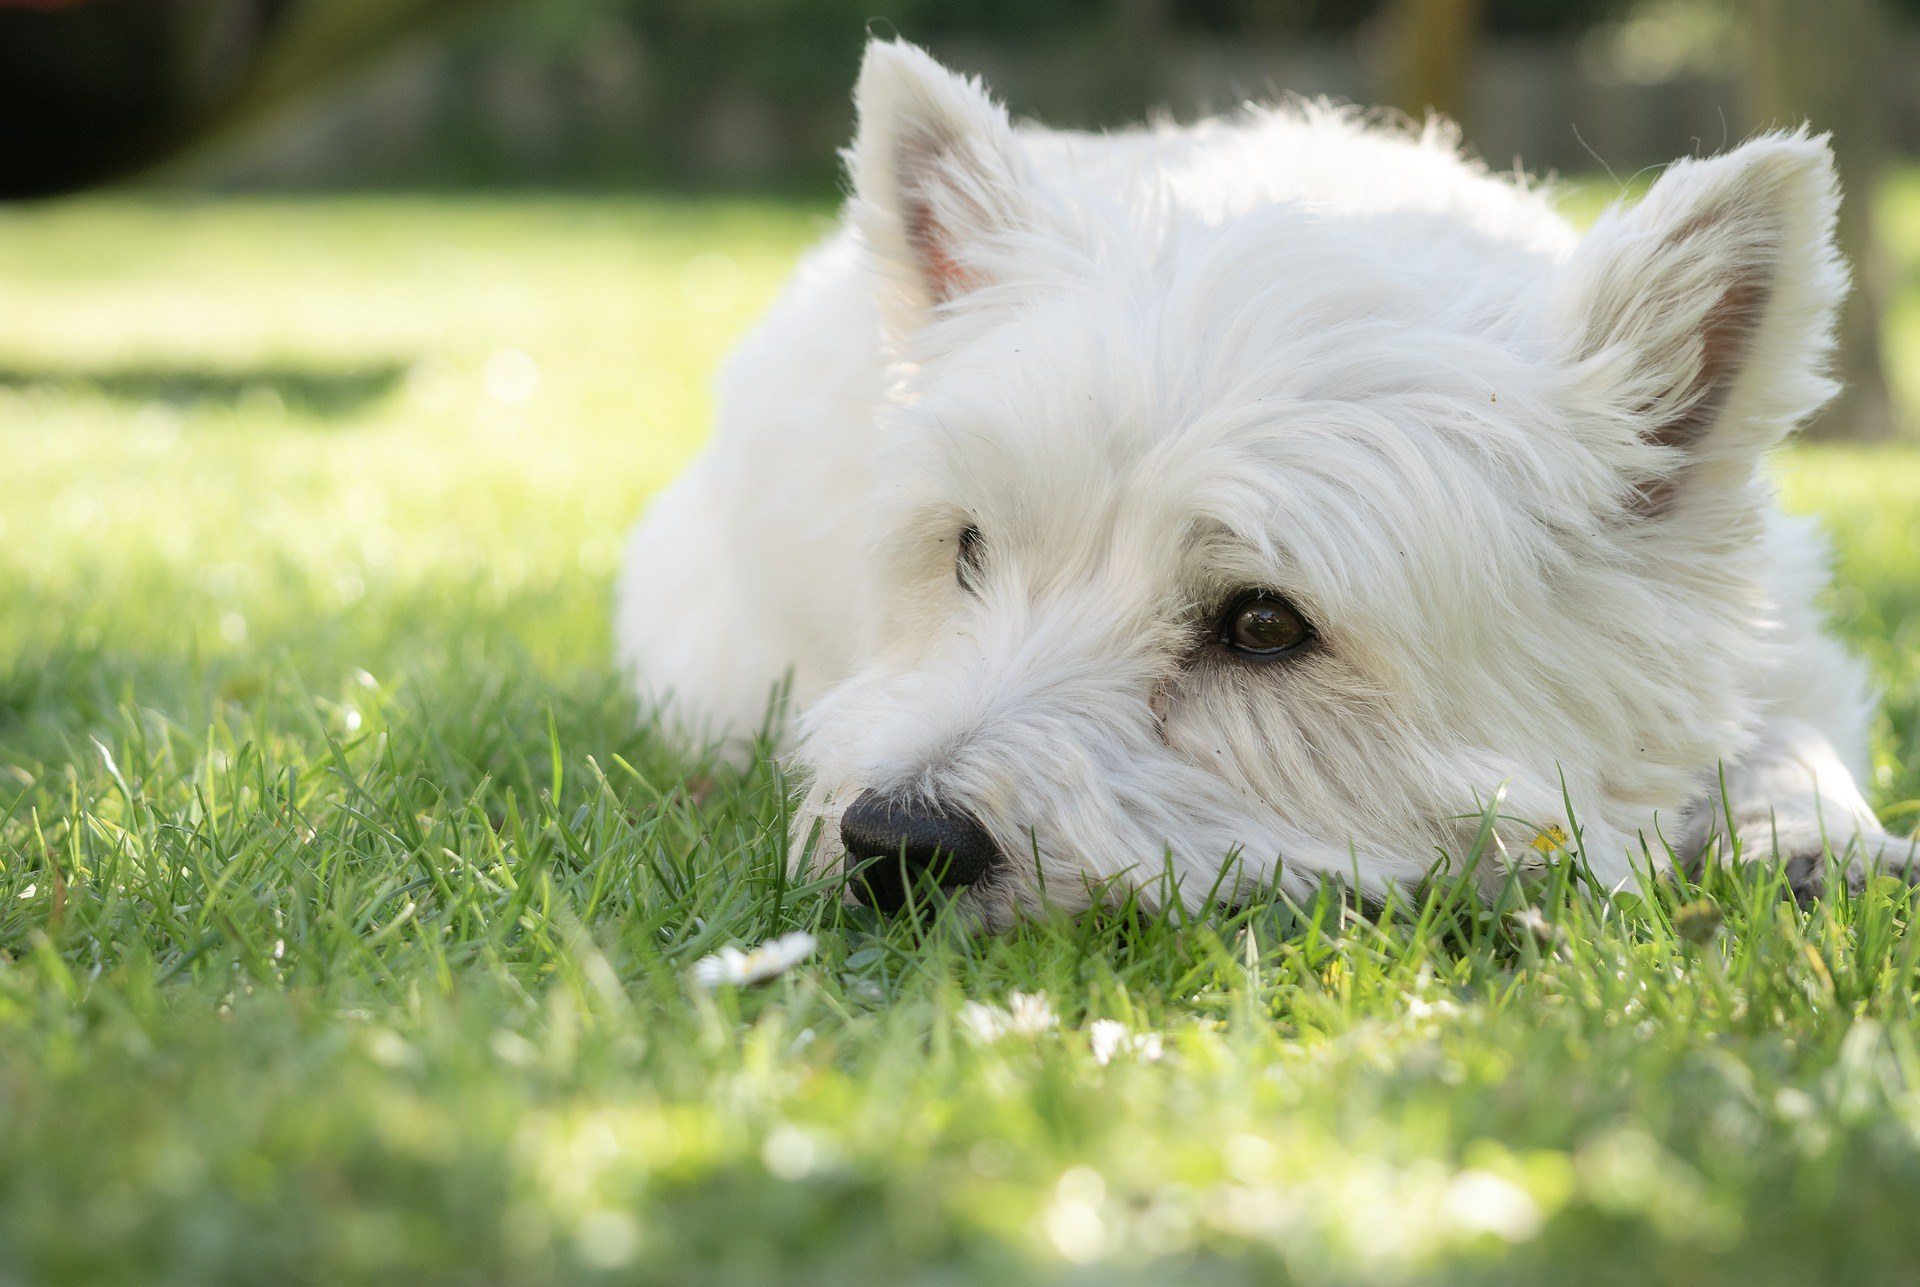 A small white dog lying in the grass and sunshine